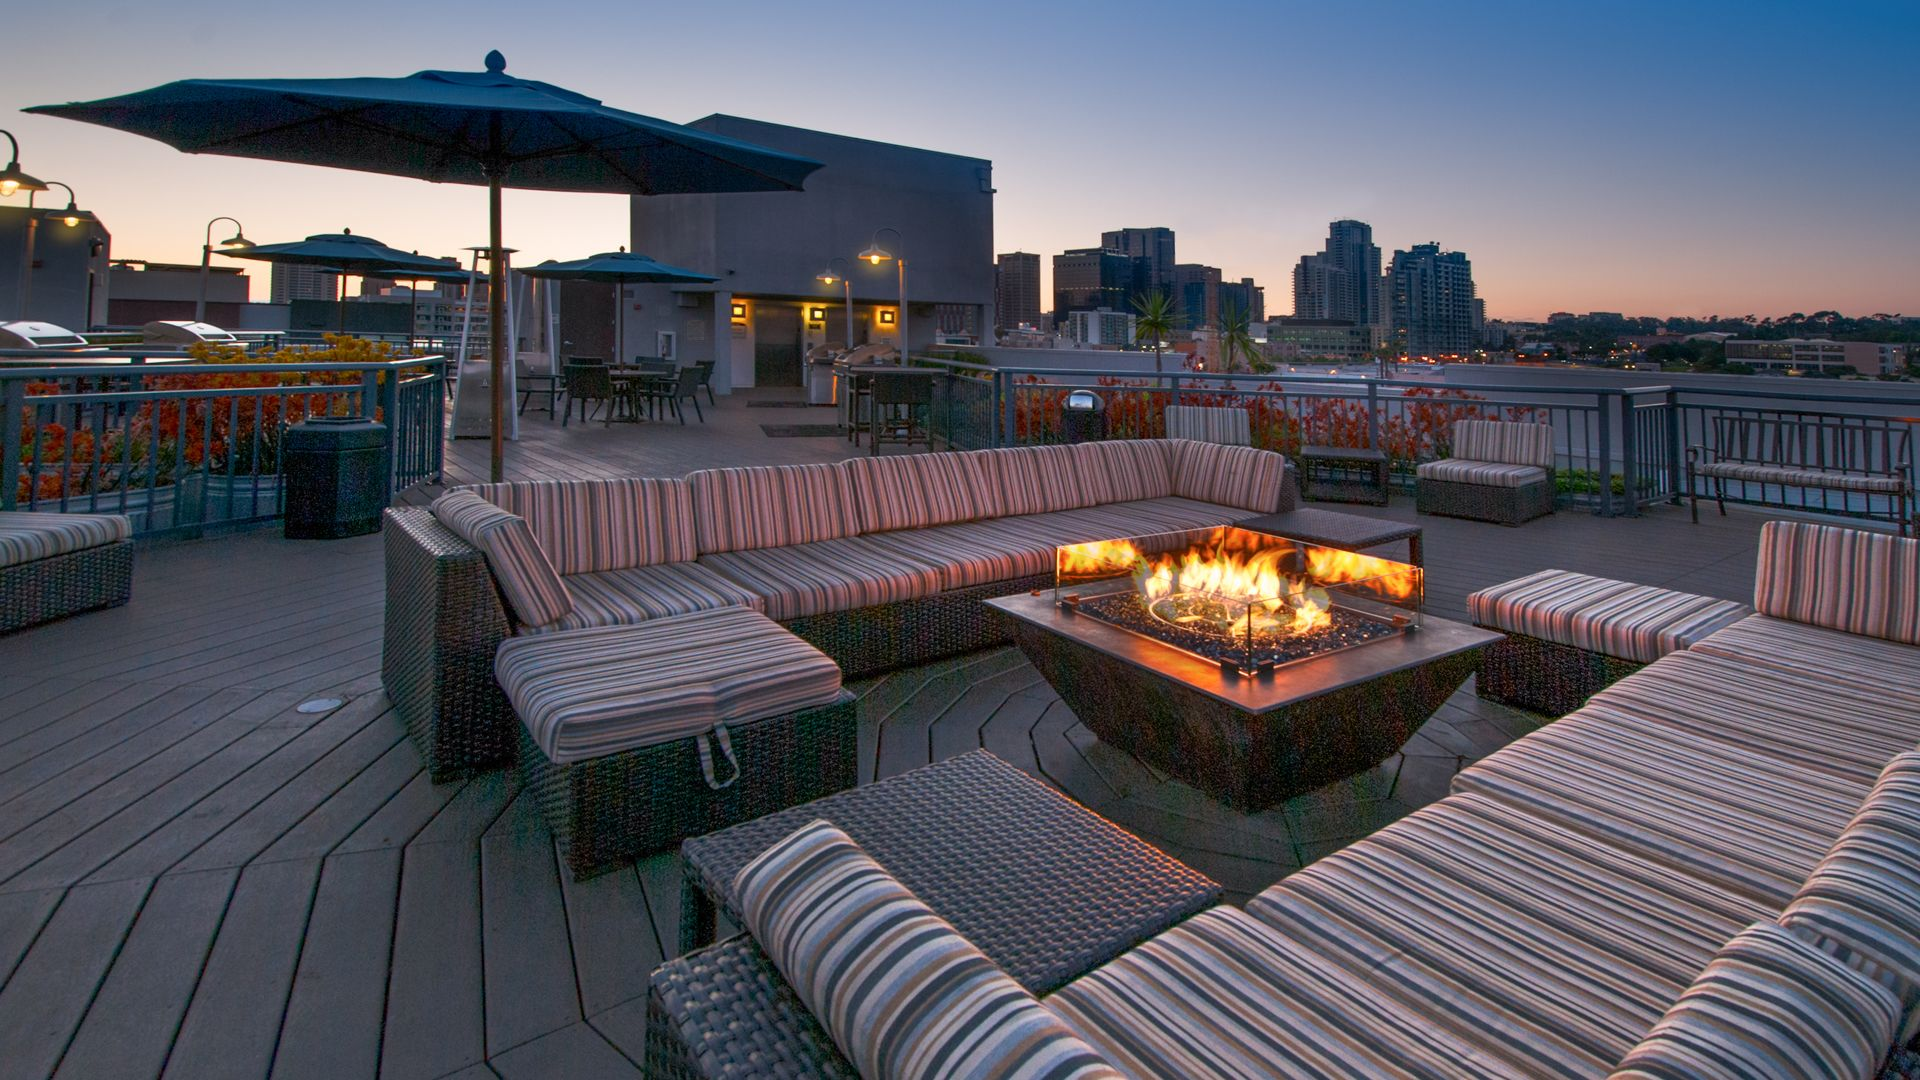 Market Street Village Apartments - Rooftop